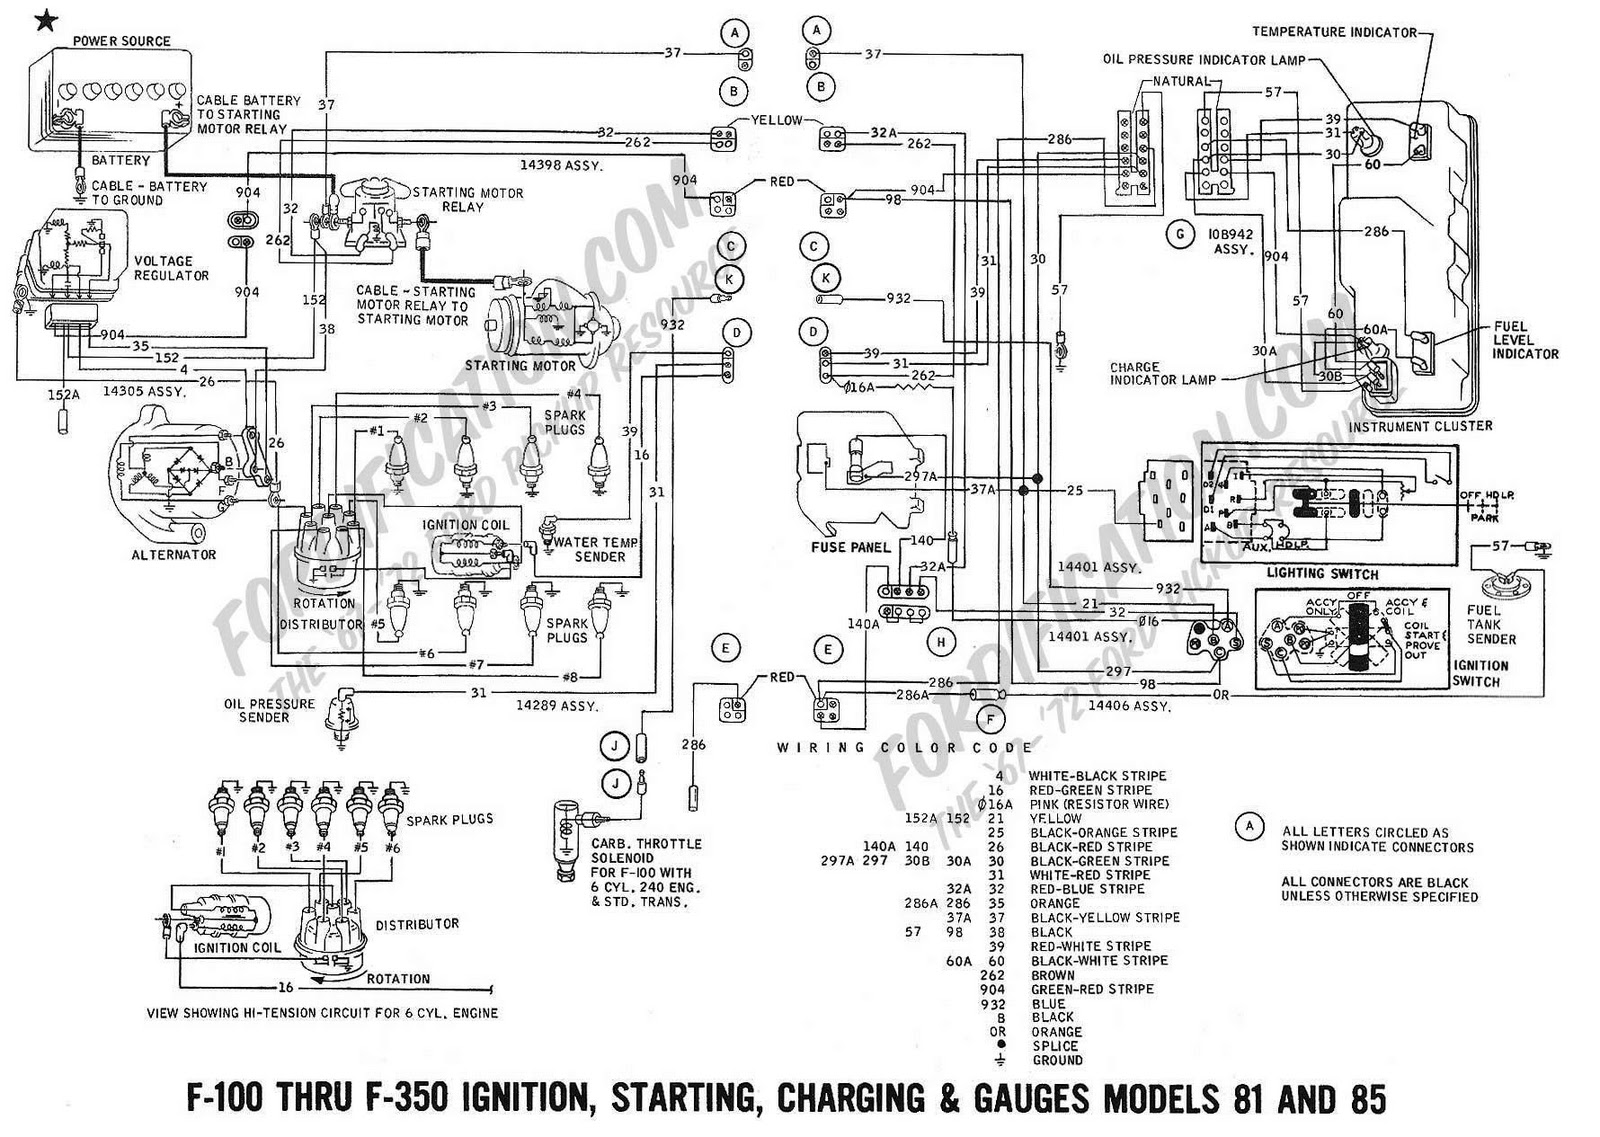 1969 Ford F100 F350 Ignition%2C Starting%2C Charging%2C And Gauges Wiring Diagram 1993 ford f250 wiring diagram 1993 ford f 250 engine \u2022 free wiring 1997 ford f350 wiring diagram at mifinder.co